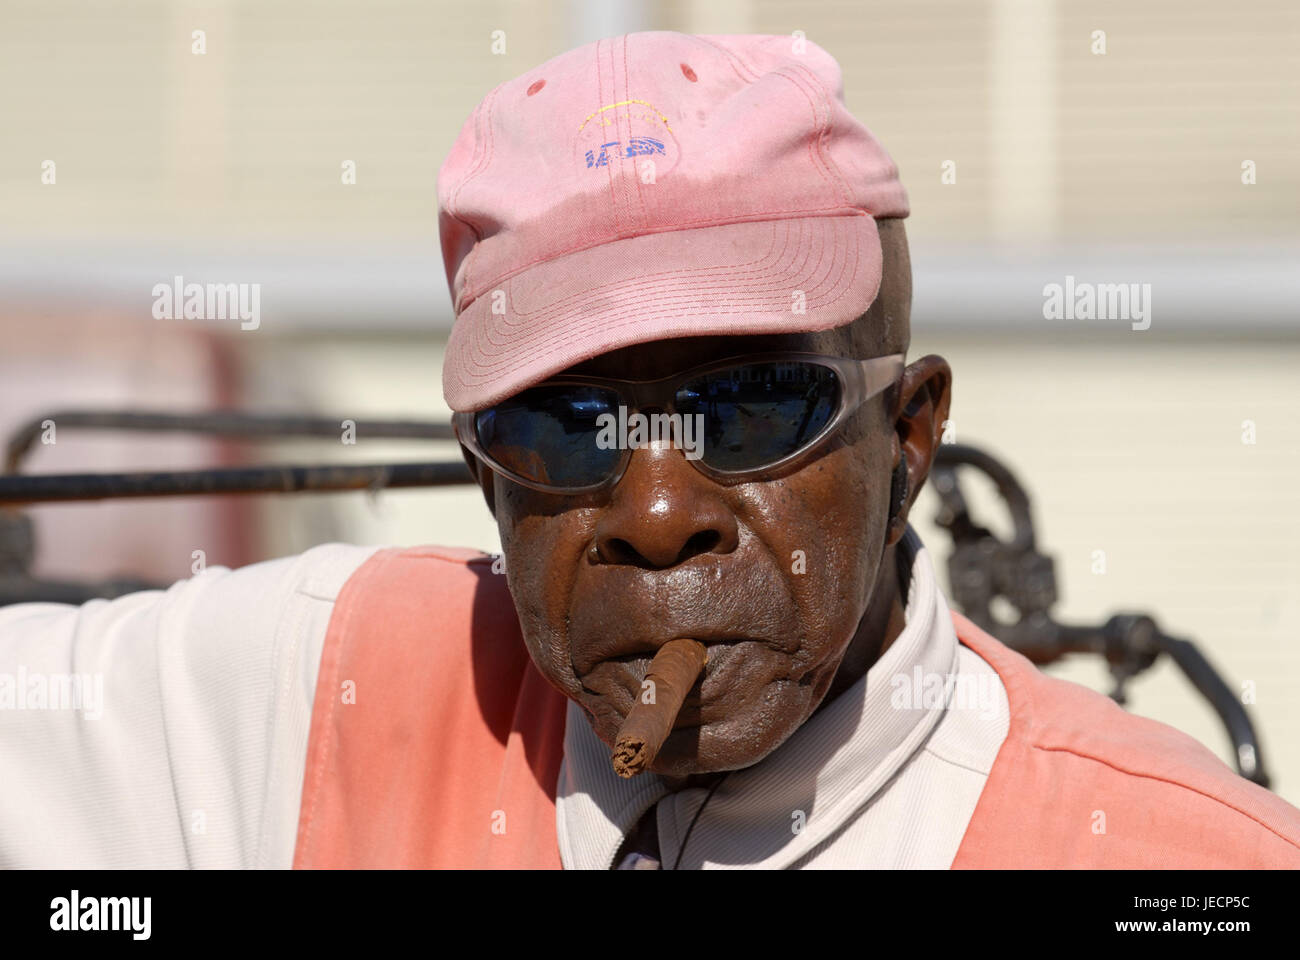 Cuba, Camagüey, man, sunglasses, cigar, smoke, portrait, the Caribbean, island, person, local, non-white, Cuban, - Stock Image